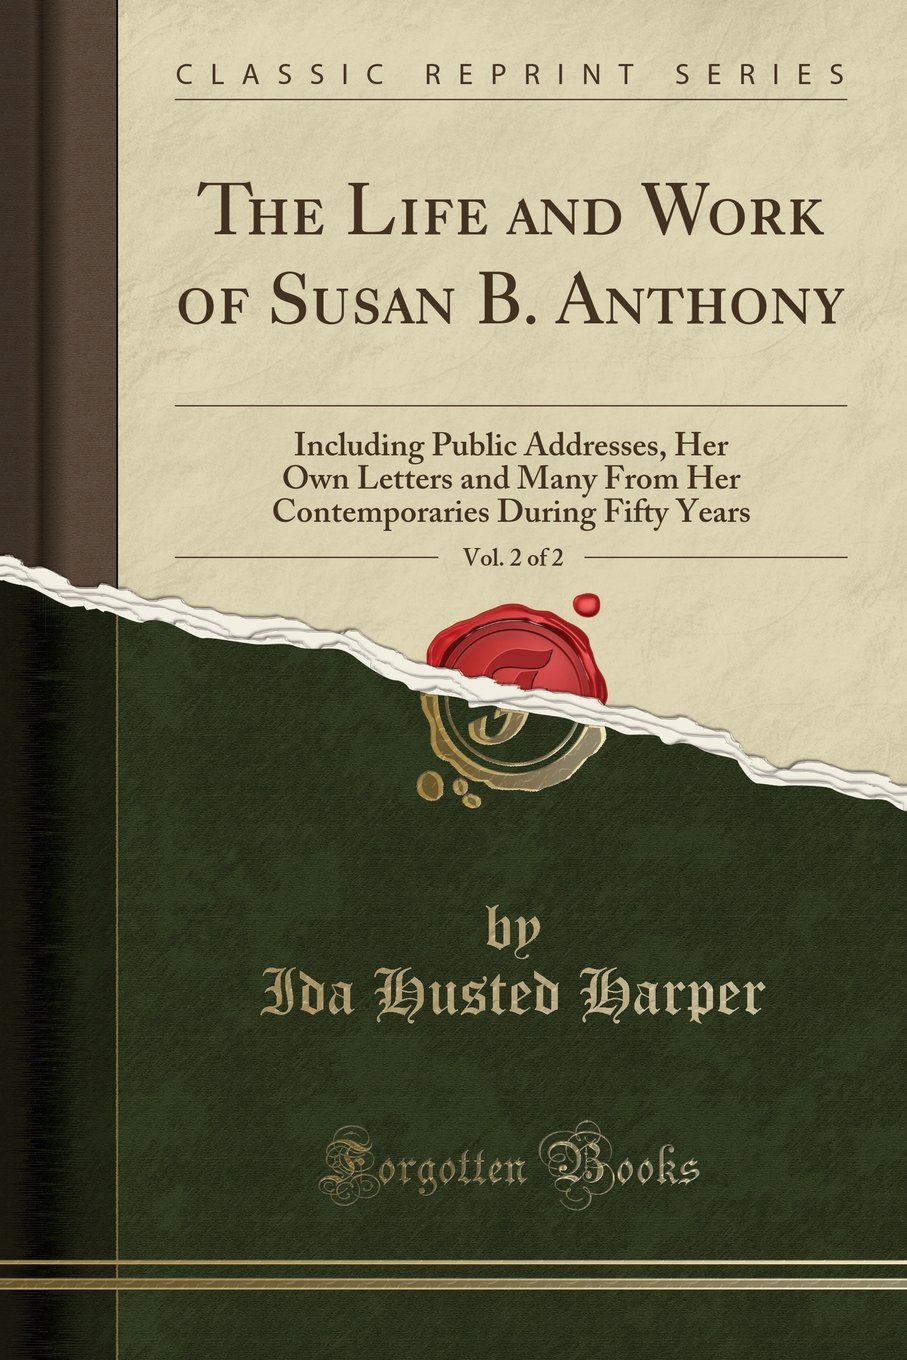 The Life and Work of Susan B. Anthony, Vol. 2 of 2: Including Public Addresses, Her Own Letters and Many From Her Contemporaries During Fifty Years (Classic Reprint) ebook